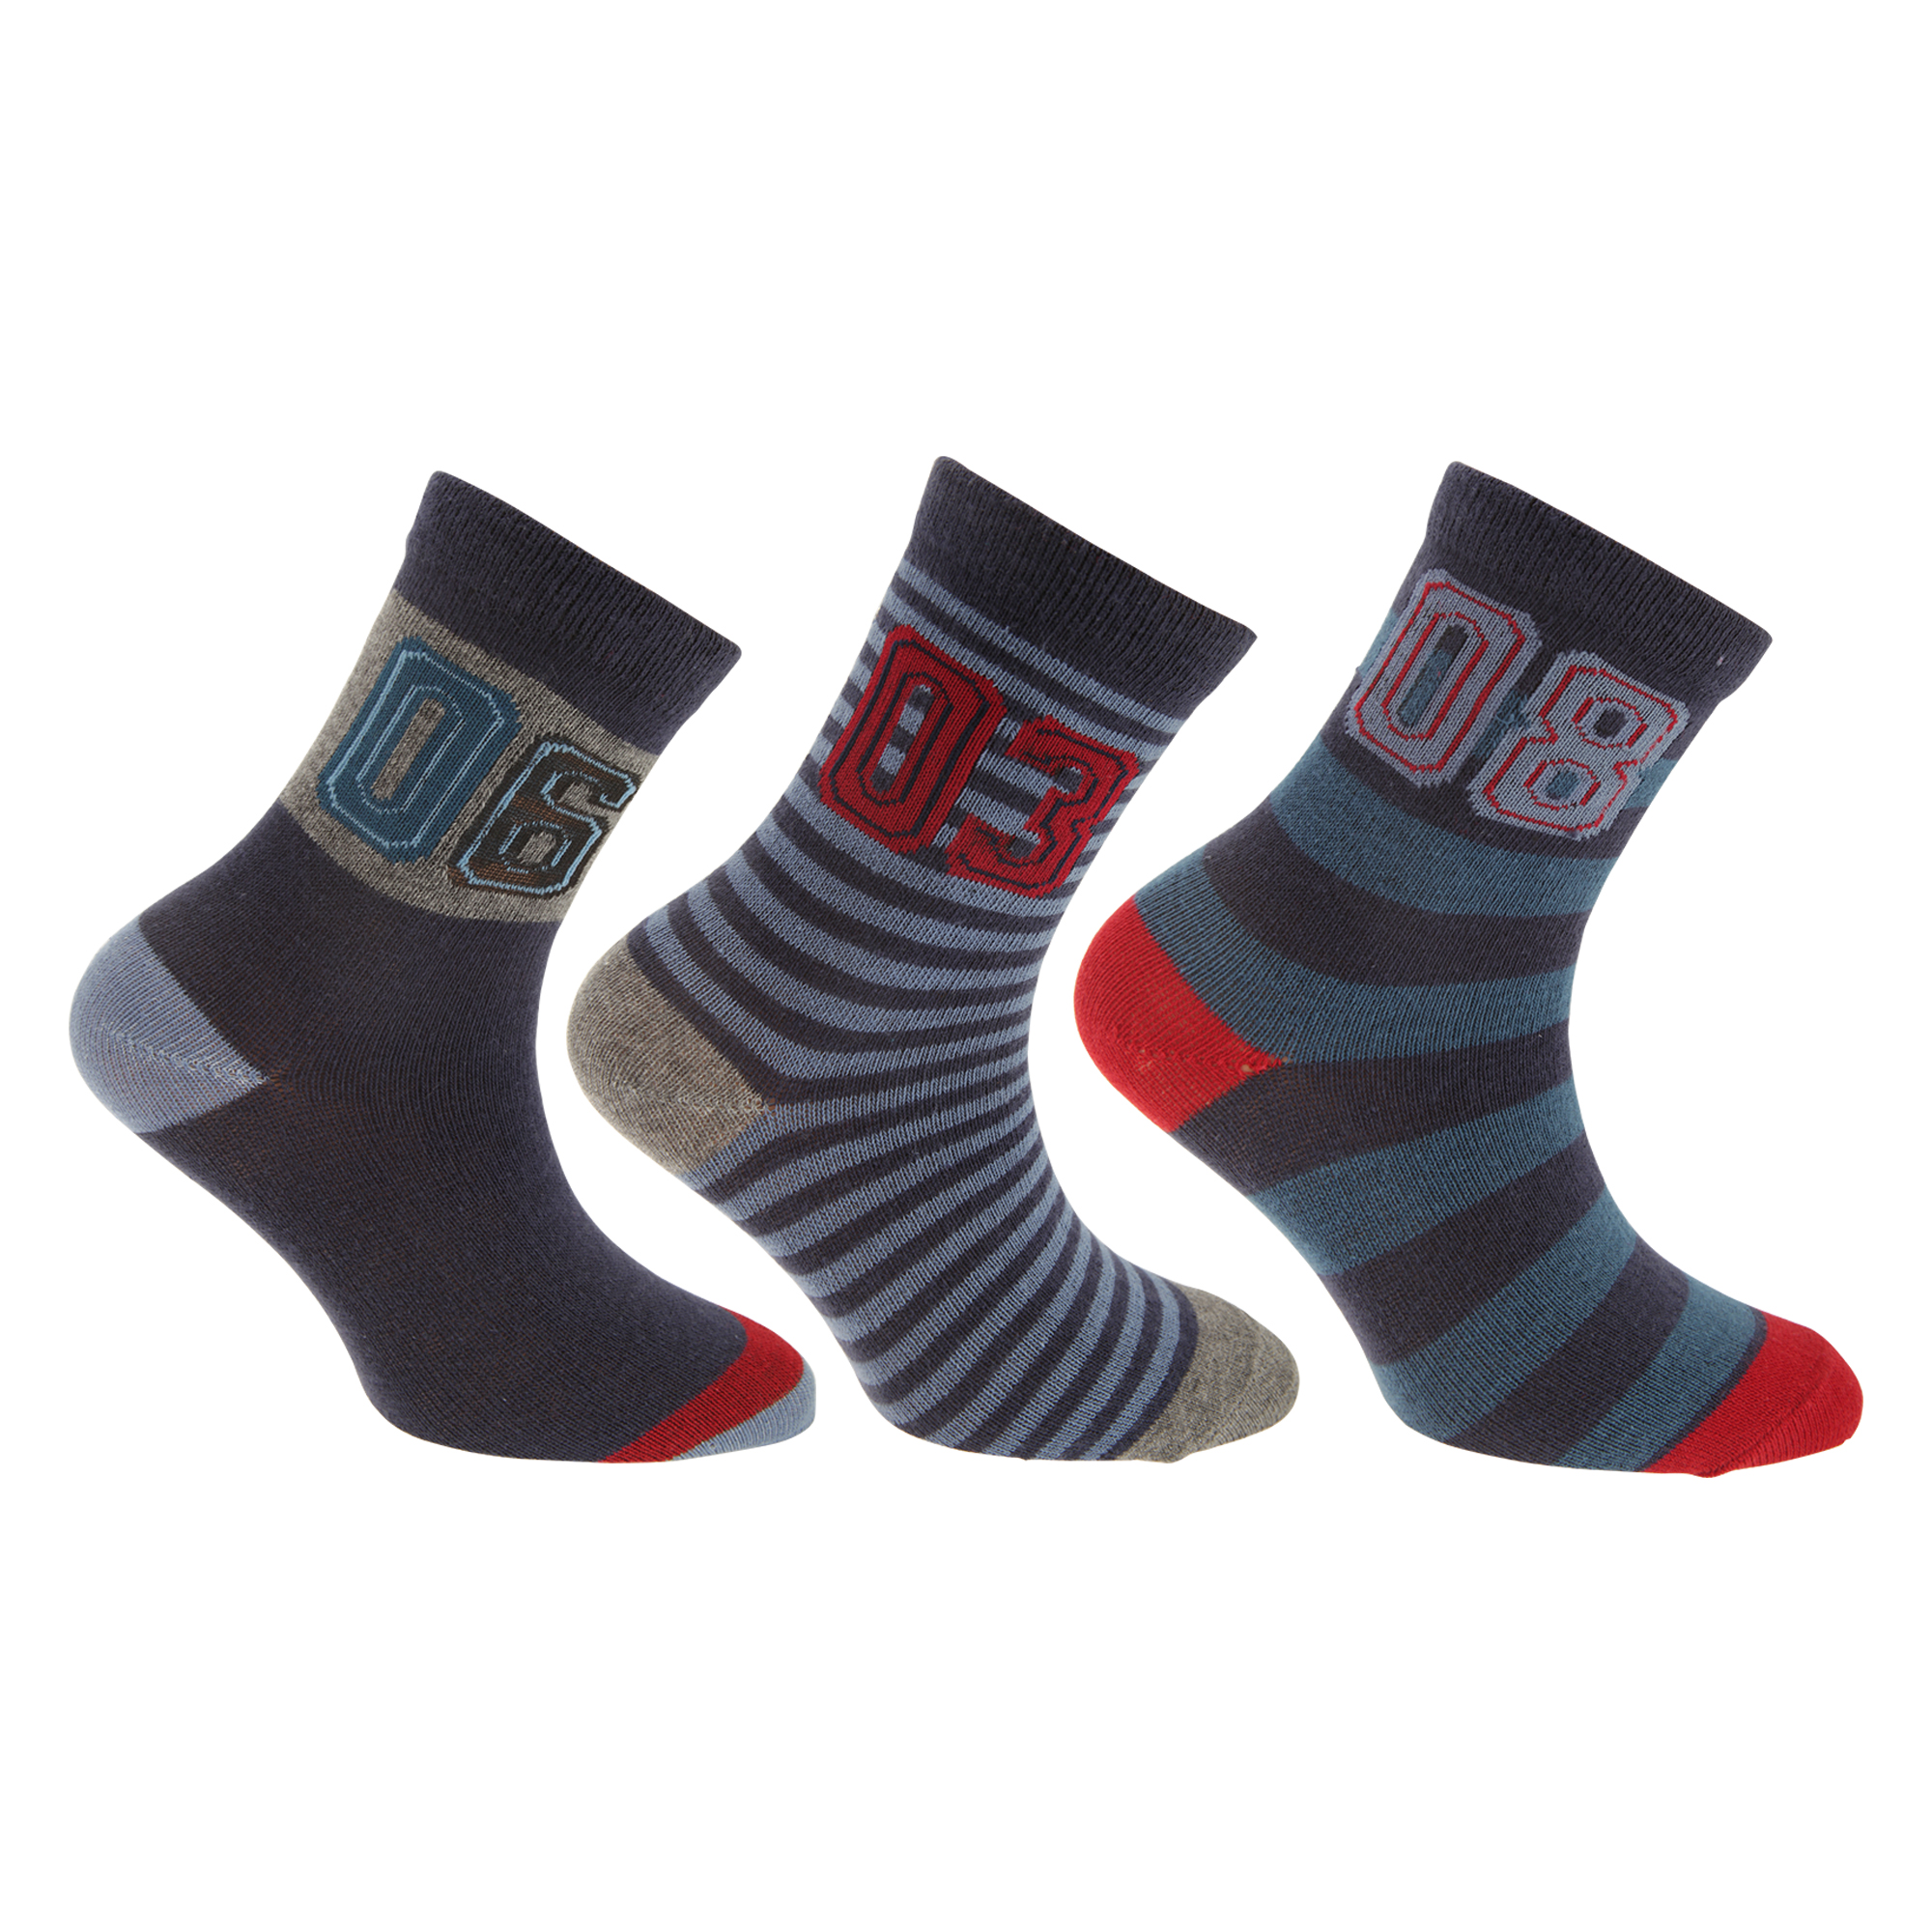 K344 Pack Of 3 Childrens Boys Gray Cotton Rich Socks With Elastane